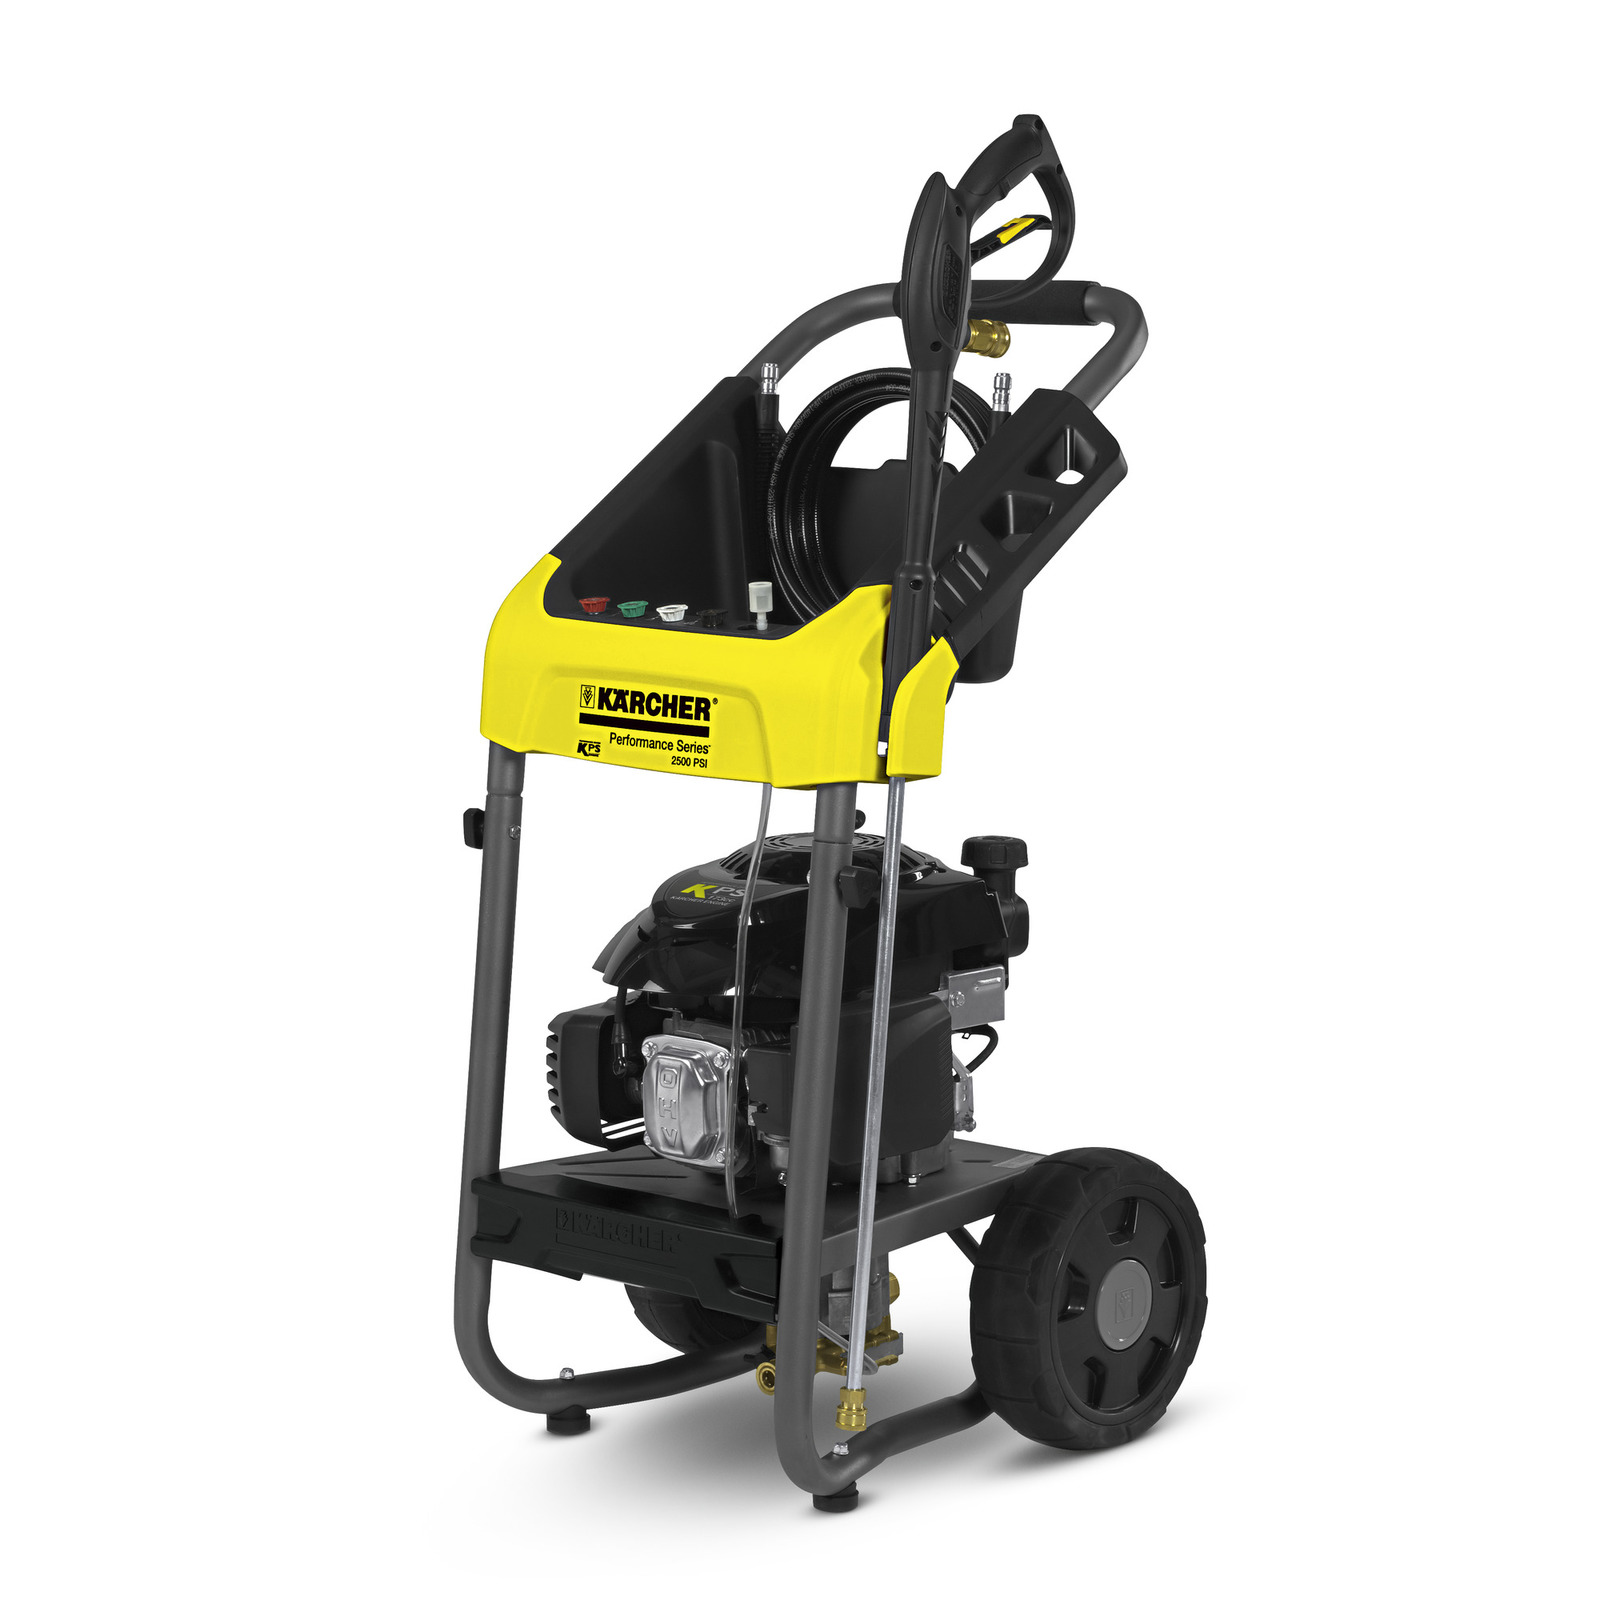 Simpson 90027 Pressure Washer Pump 3100 Psi 2 5 Gpm furthermore John Deere Hr 2610gm Residential Light Duty Pressure Washer Detail together with 1000098440 moreover AC 3000GS Heavy Duty Direct Drive Pressure Washer moreover 321335076314. on direct drive washer help